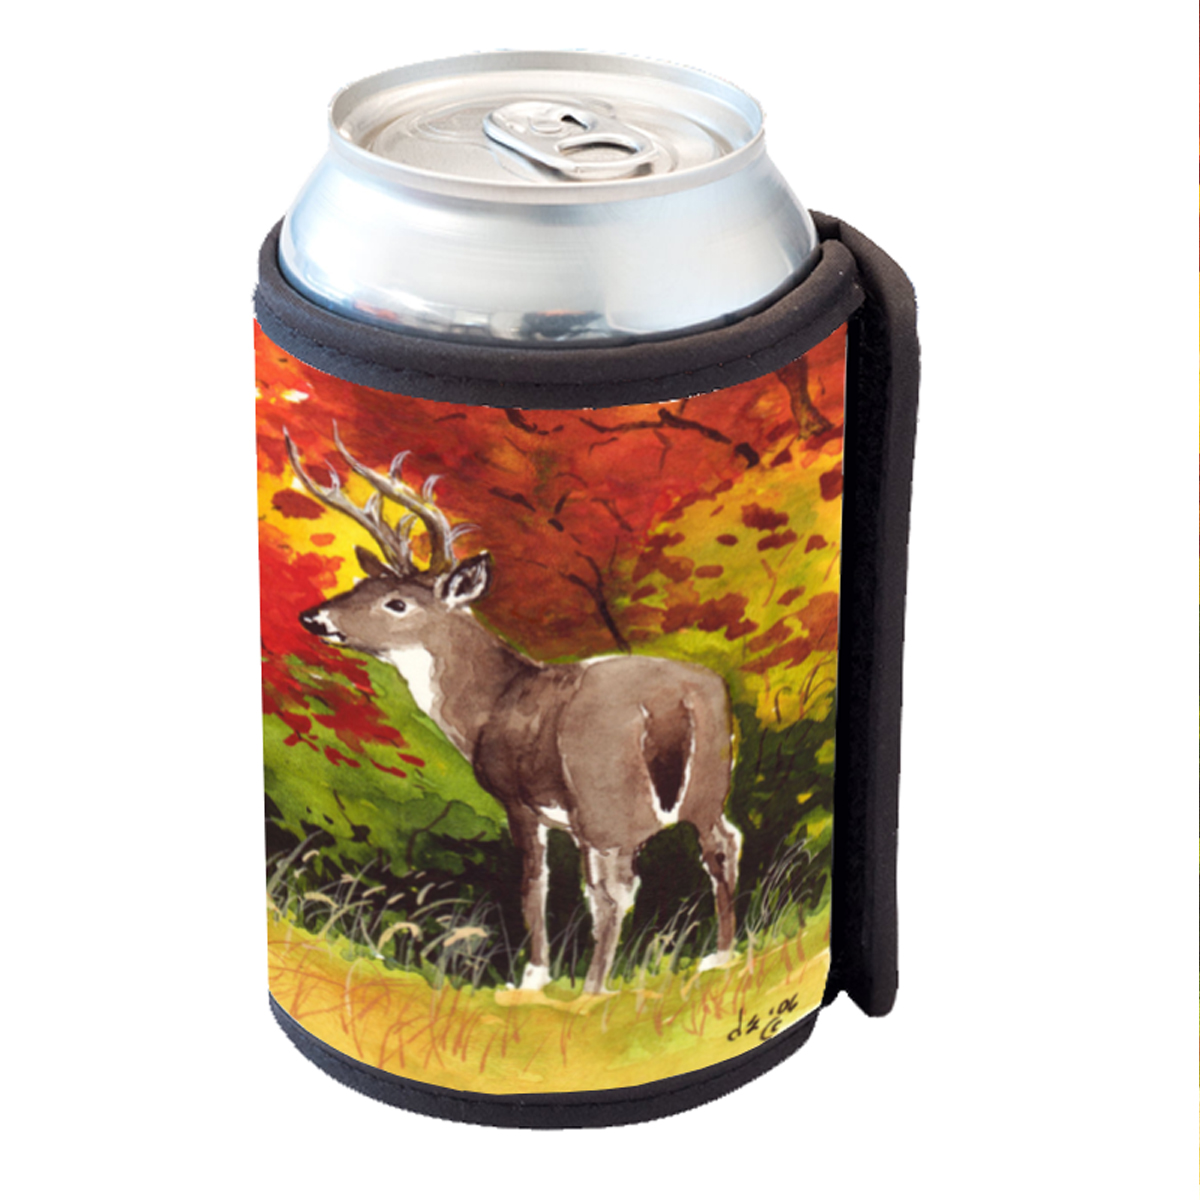 KuzmarK Insulated Drink Can Cooler Hugger - Whitetail Buck in Autumn Art by Denise Every